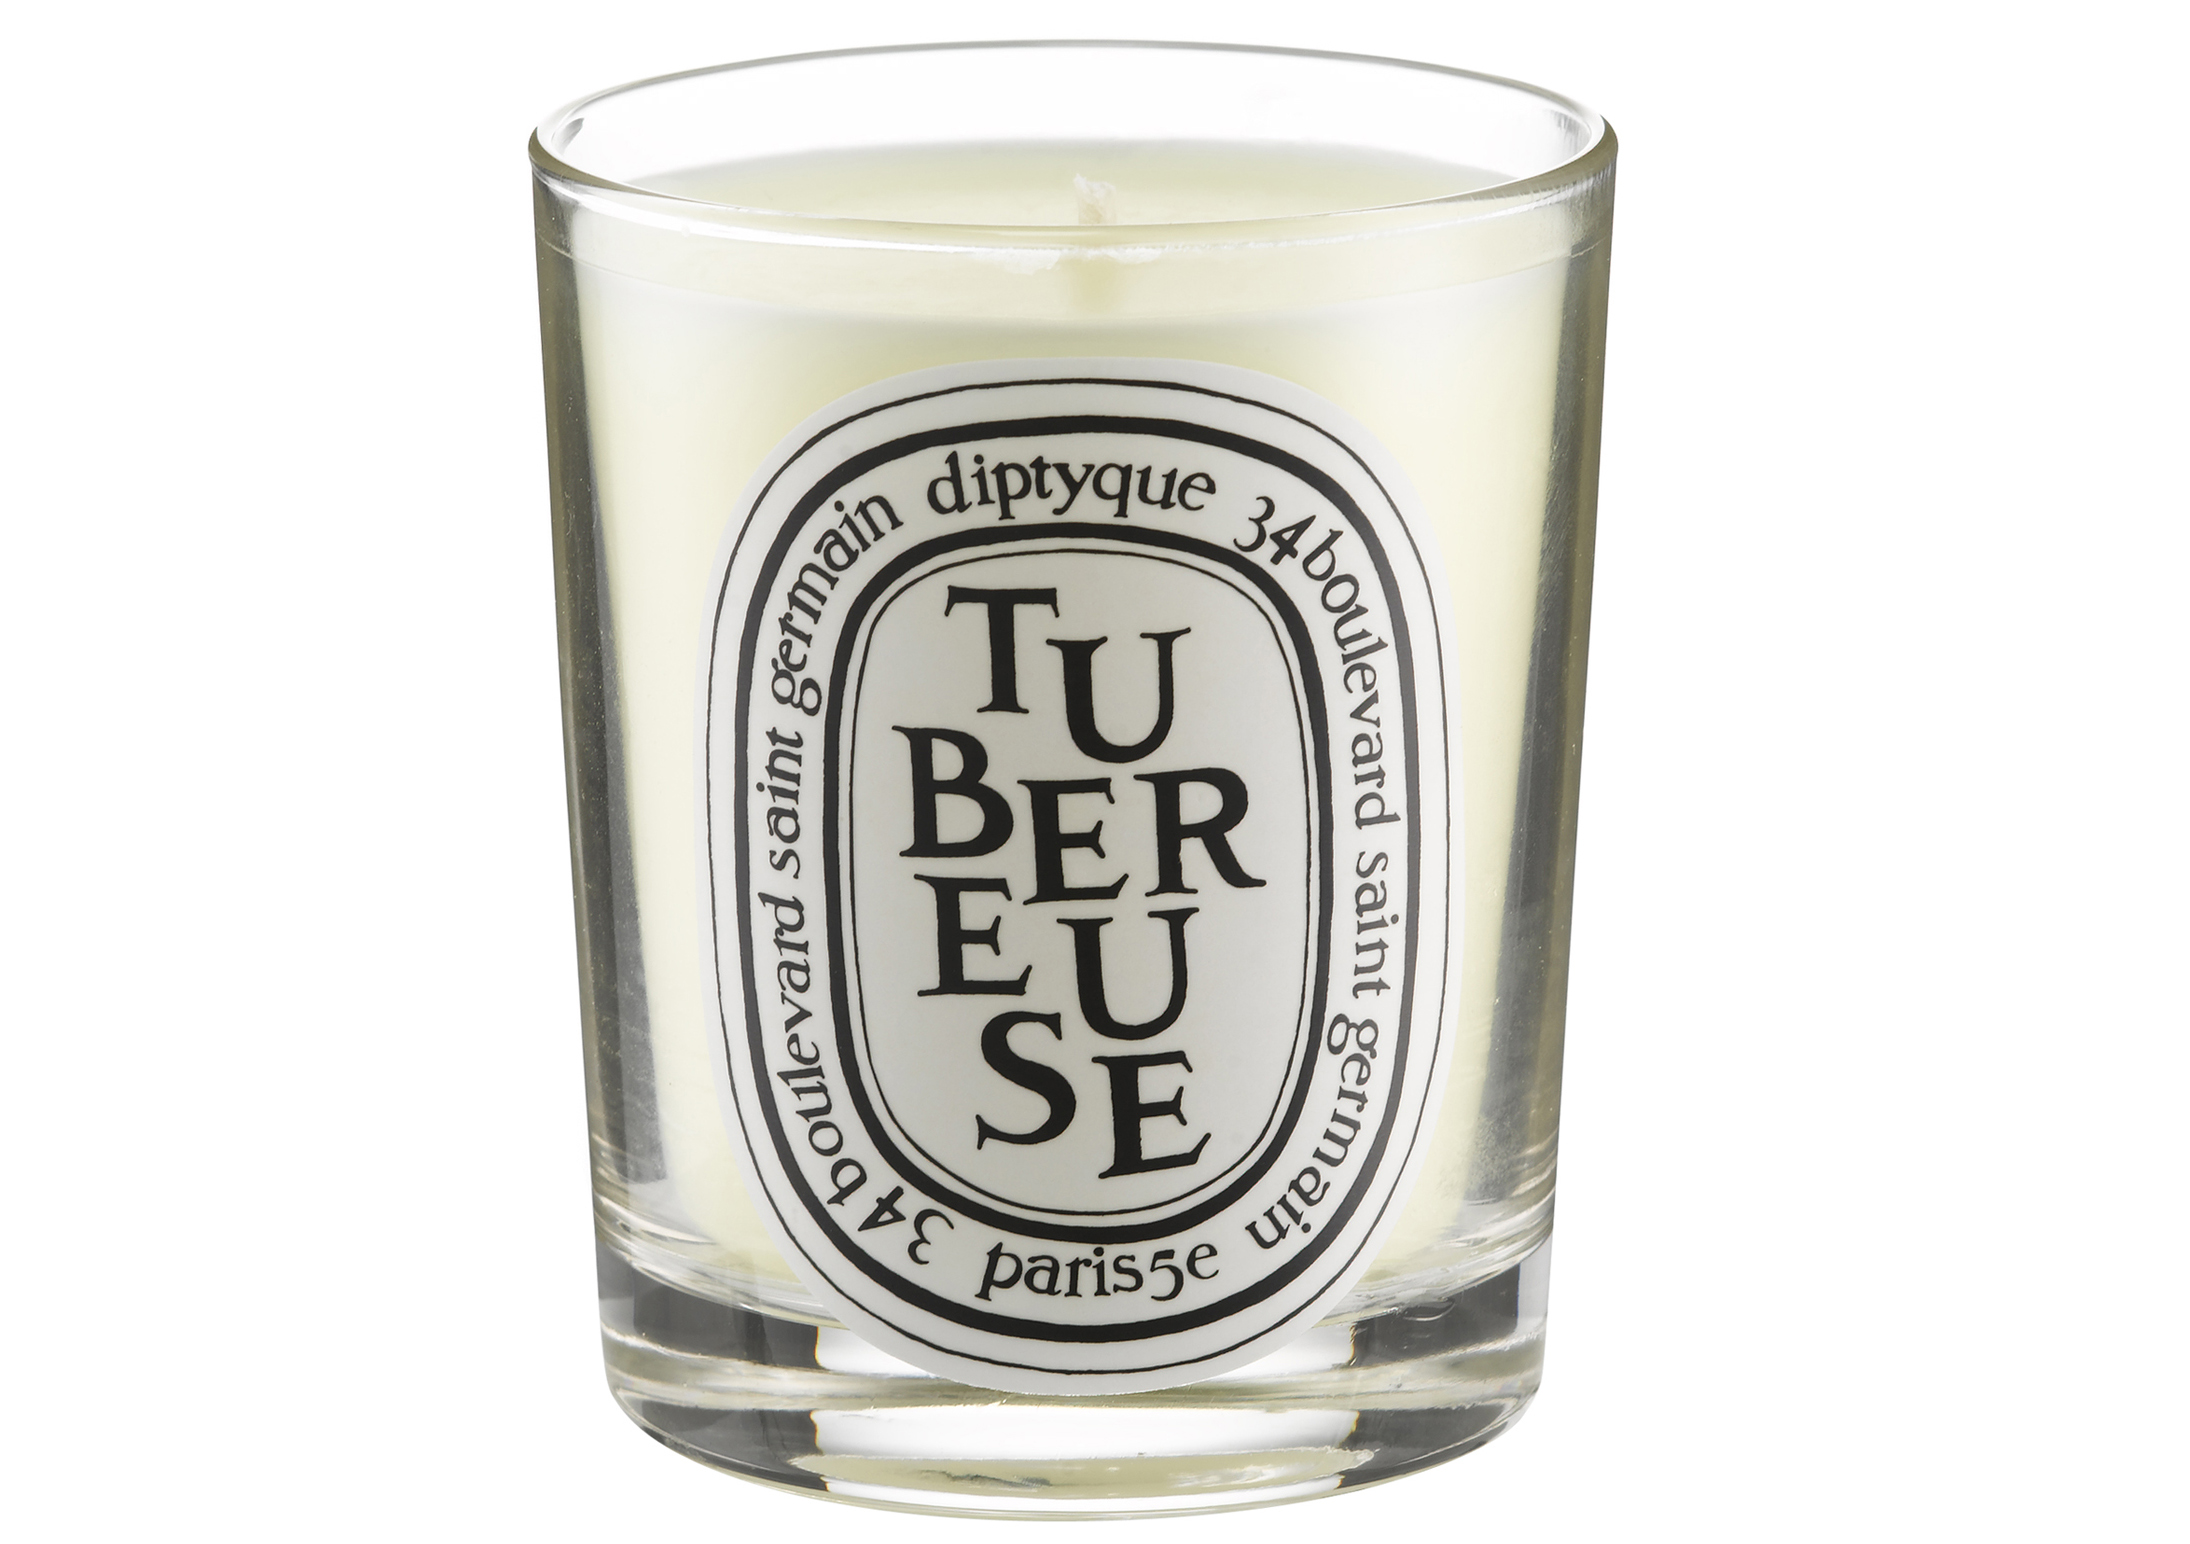 Diptyque - Tubereuse Candle.jpg